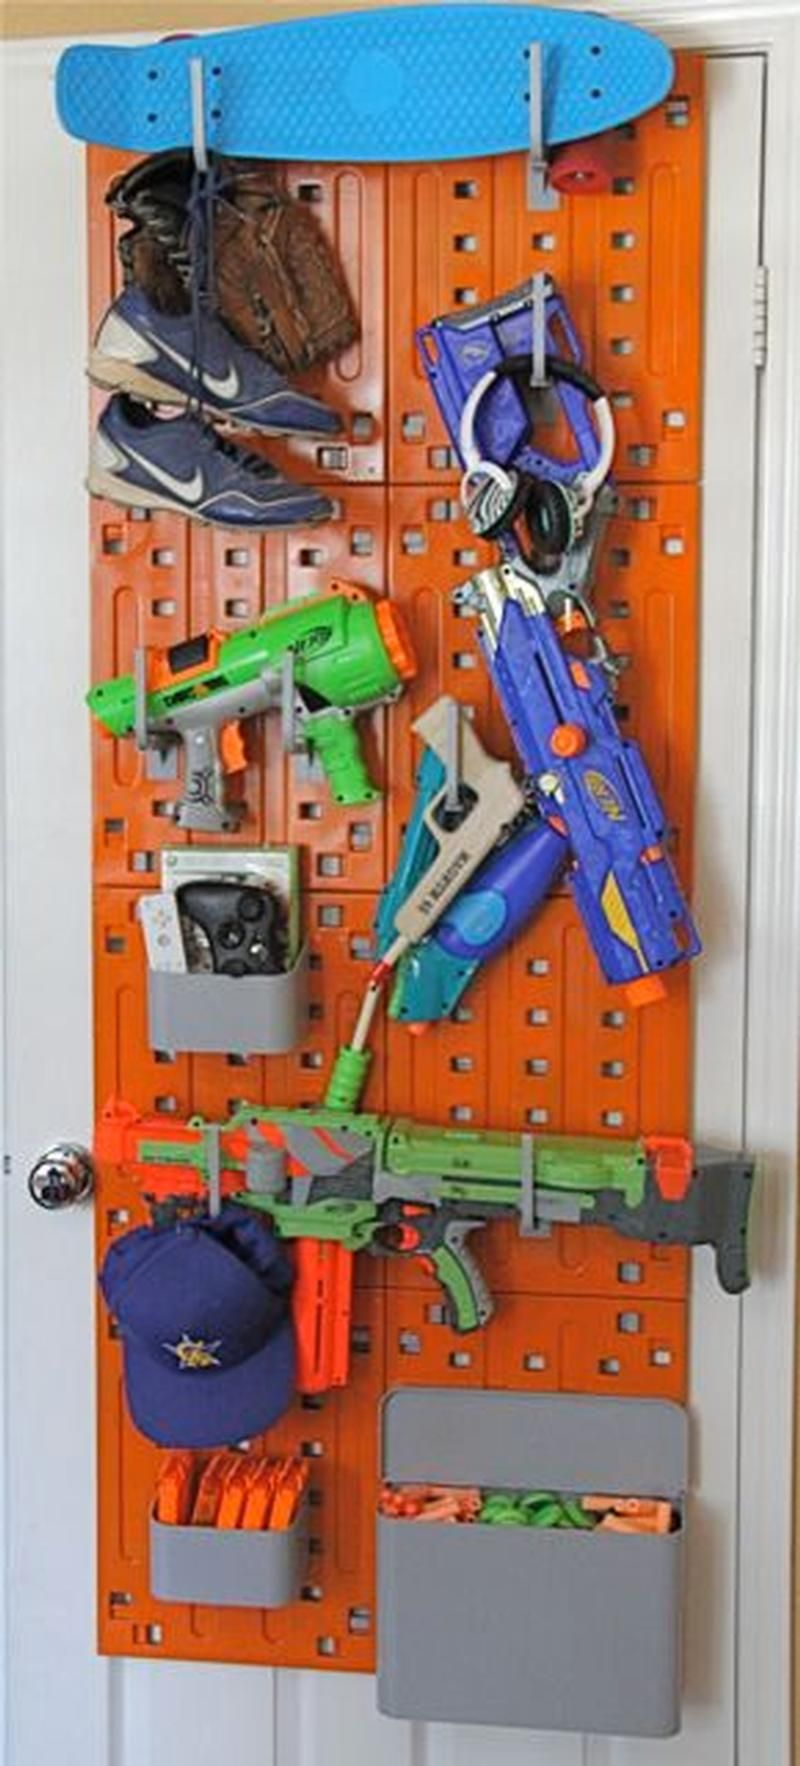 Boy Bedroom Storage: Off The Floor Ez Store -great For Organizing A Boys Room